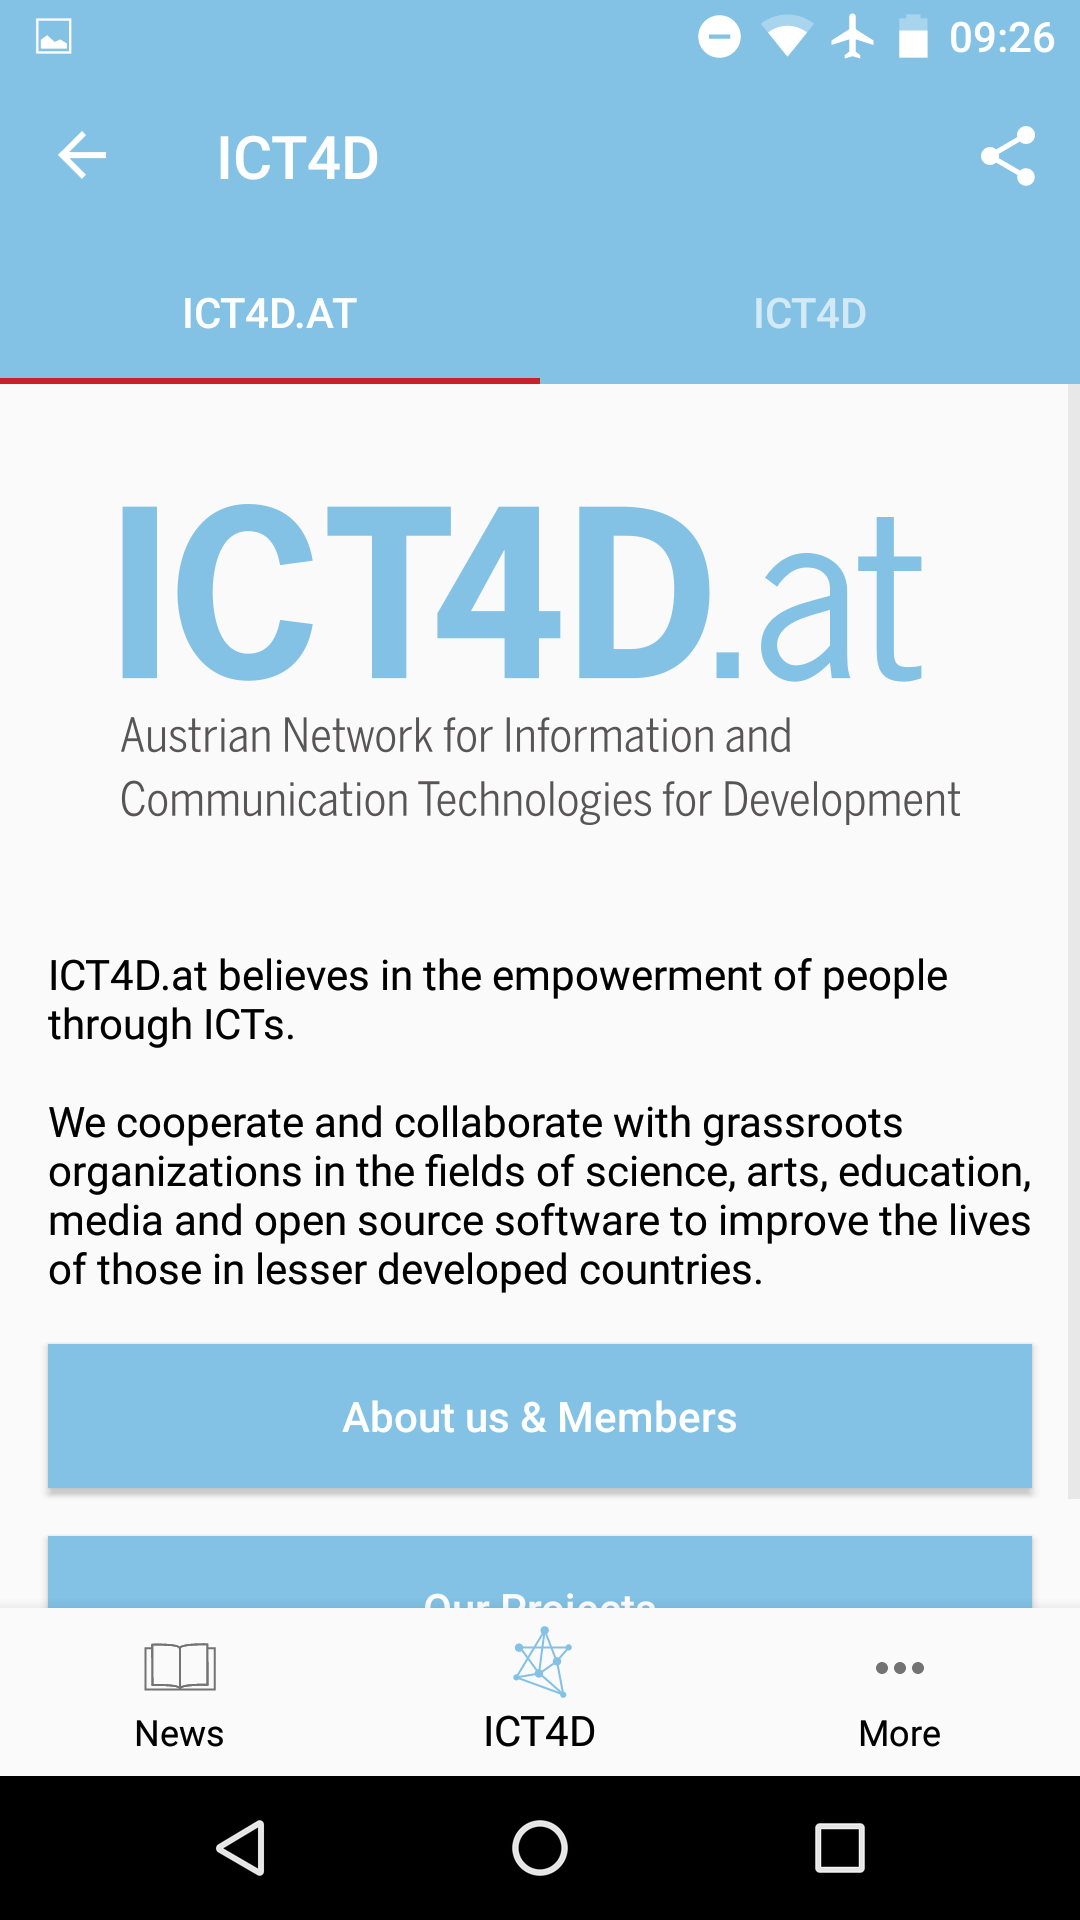 About ICT4D.at